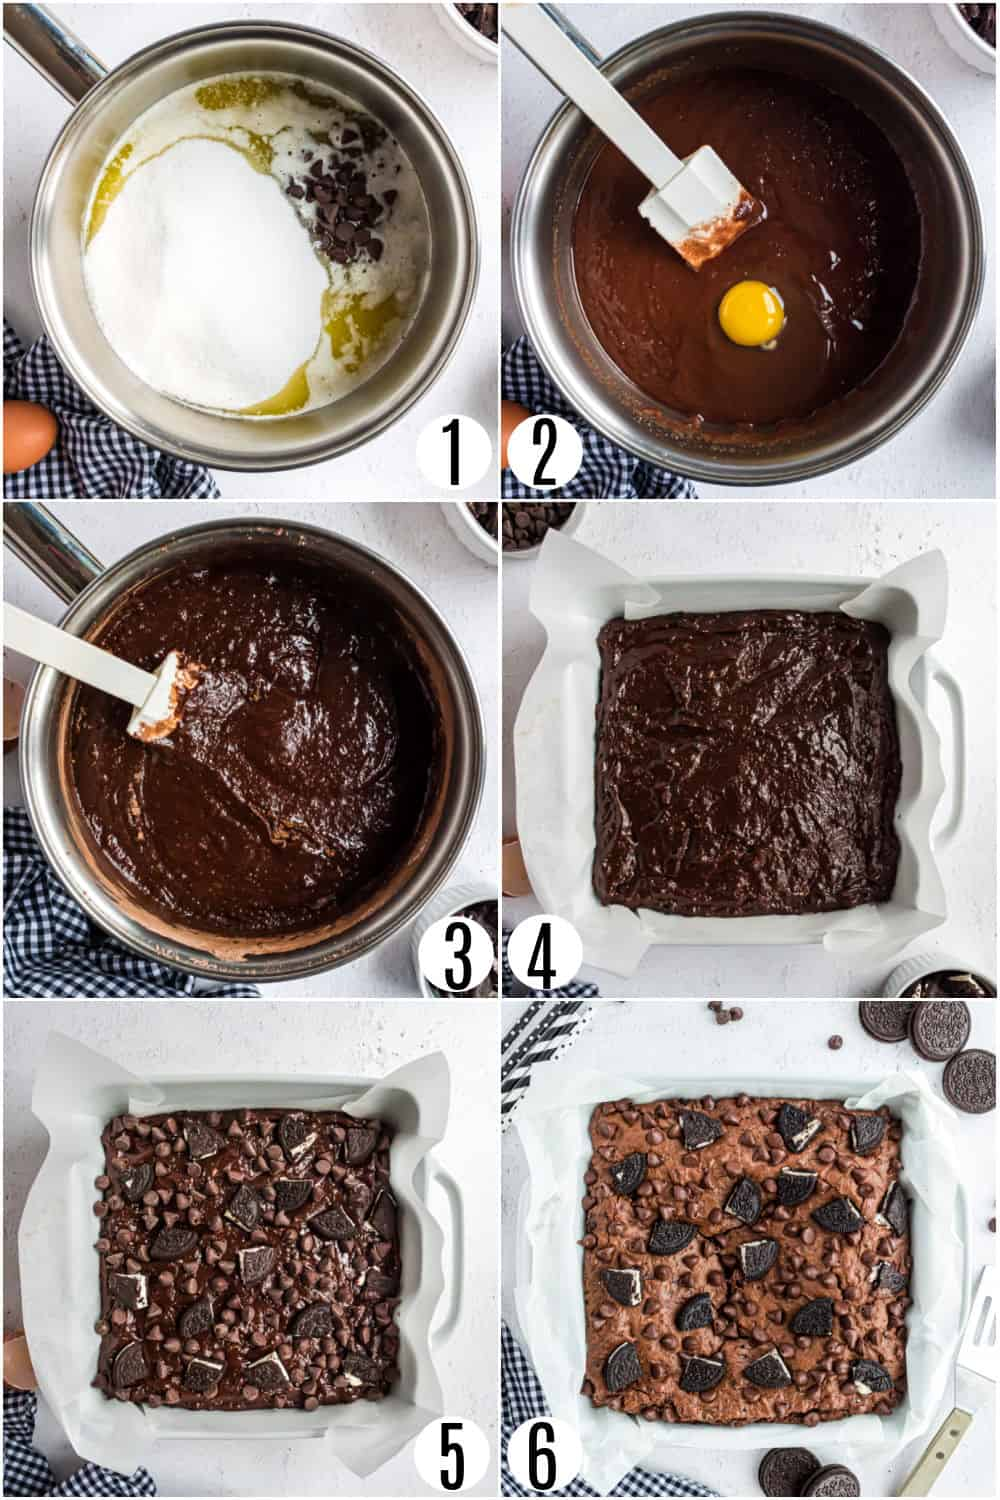 Step-by-step instructions for making oreo brownies.